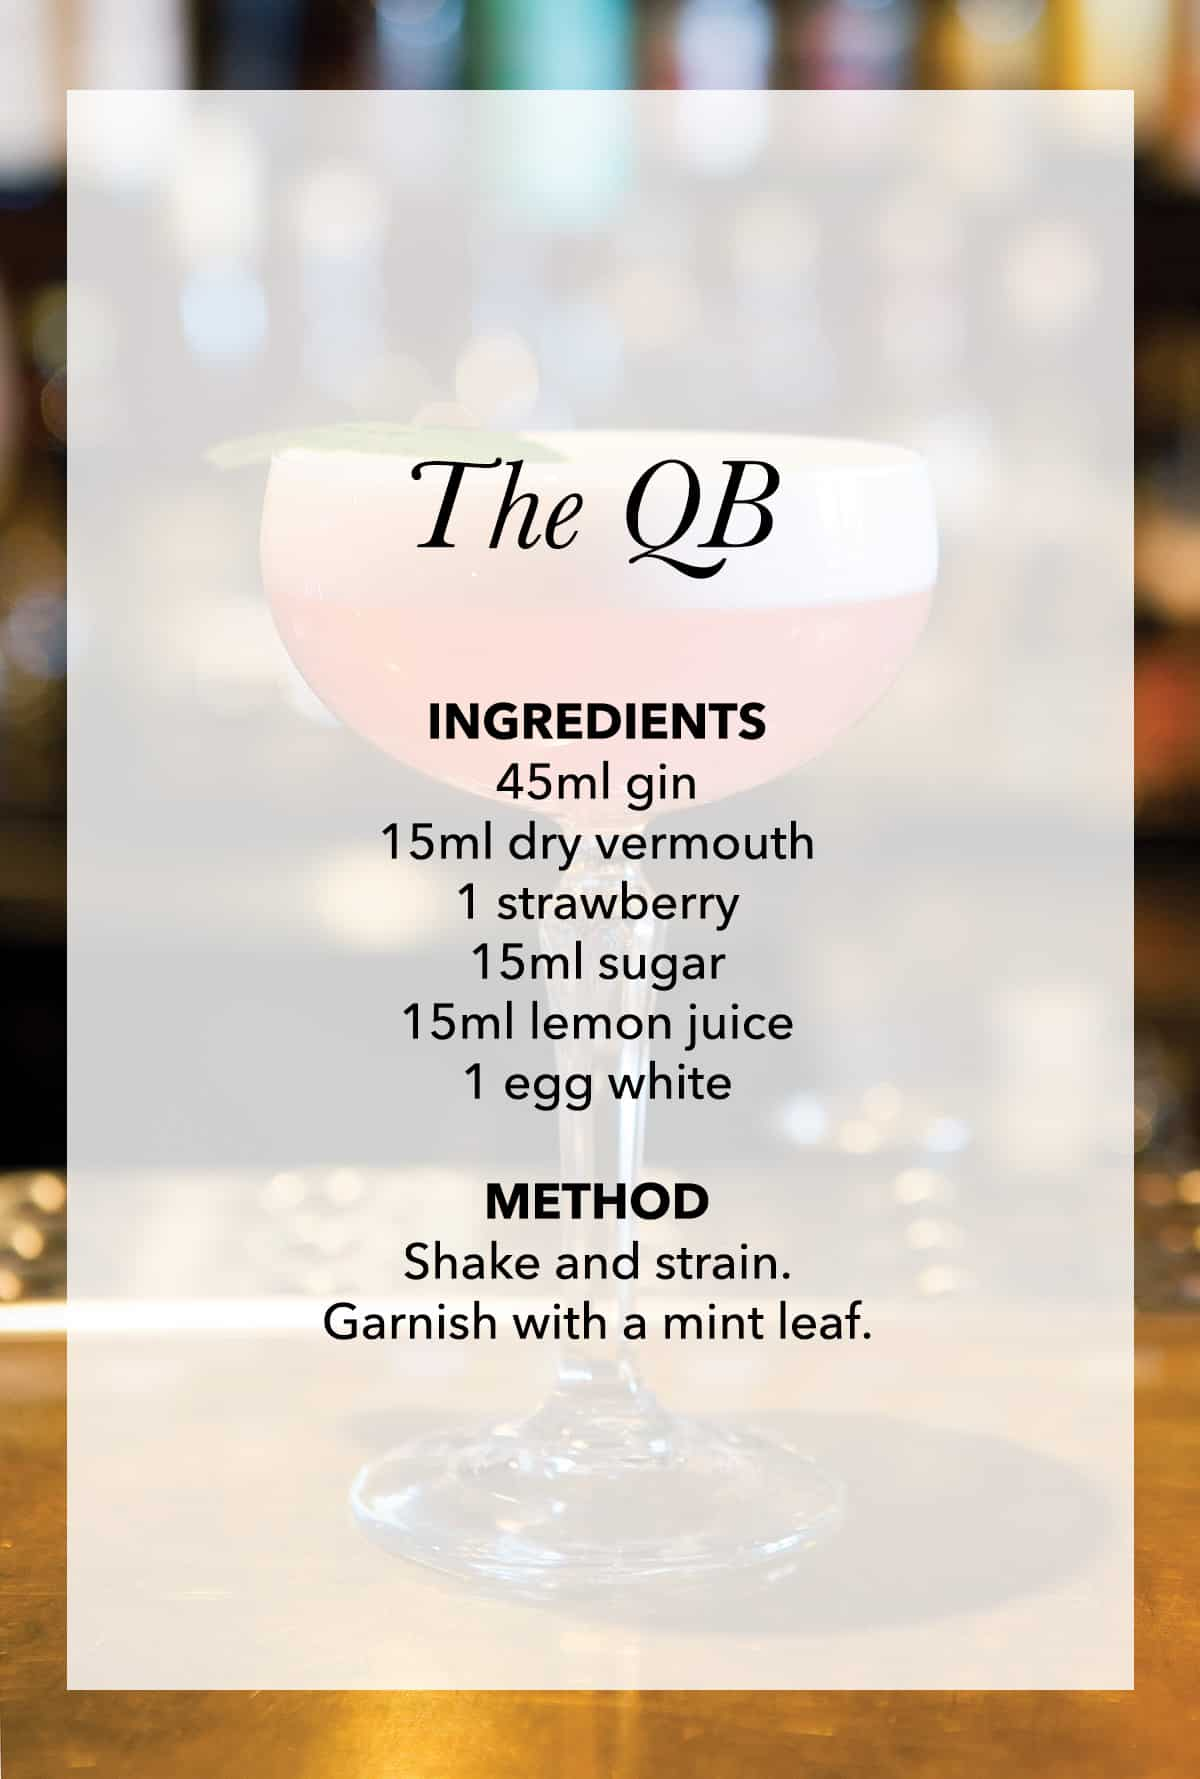 QBcocktail1RECIPE